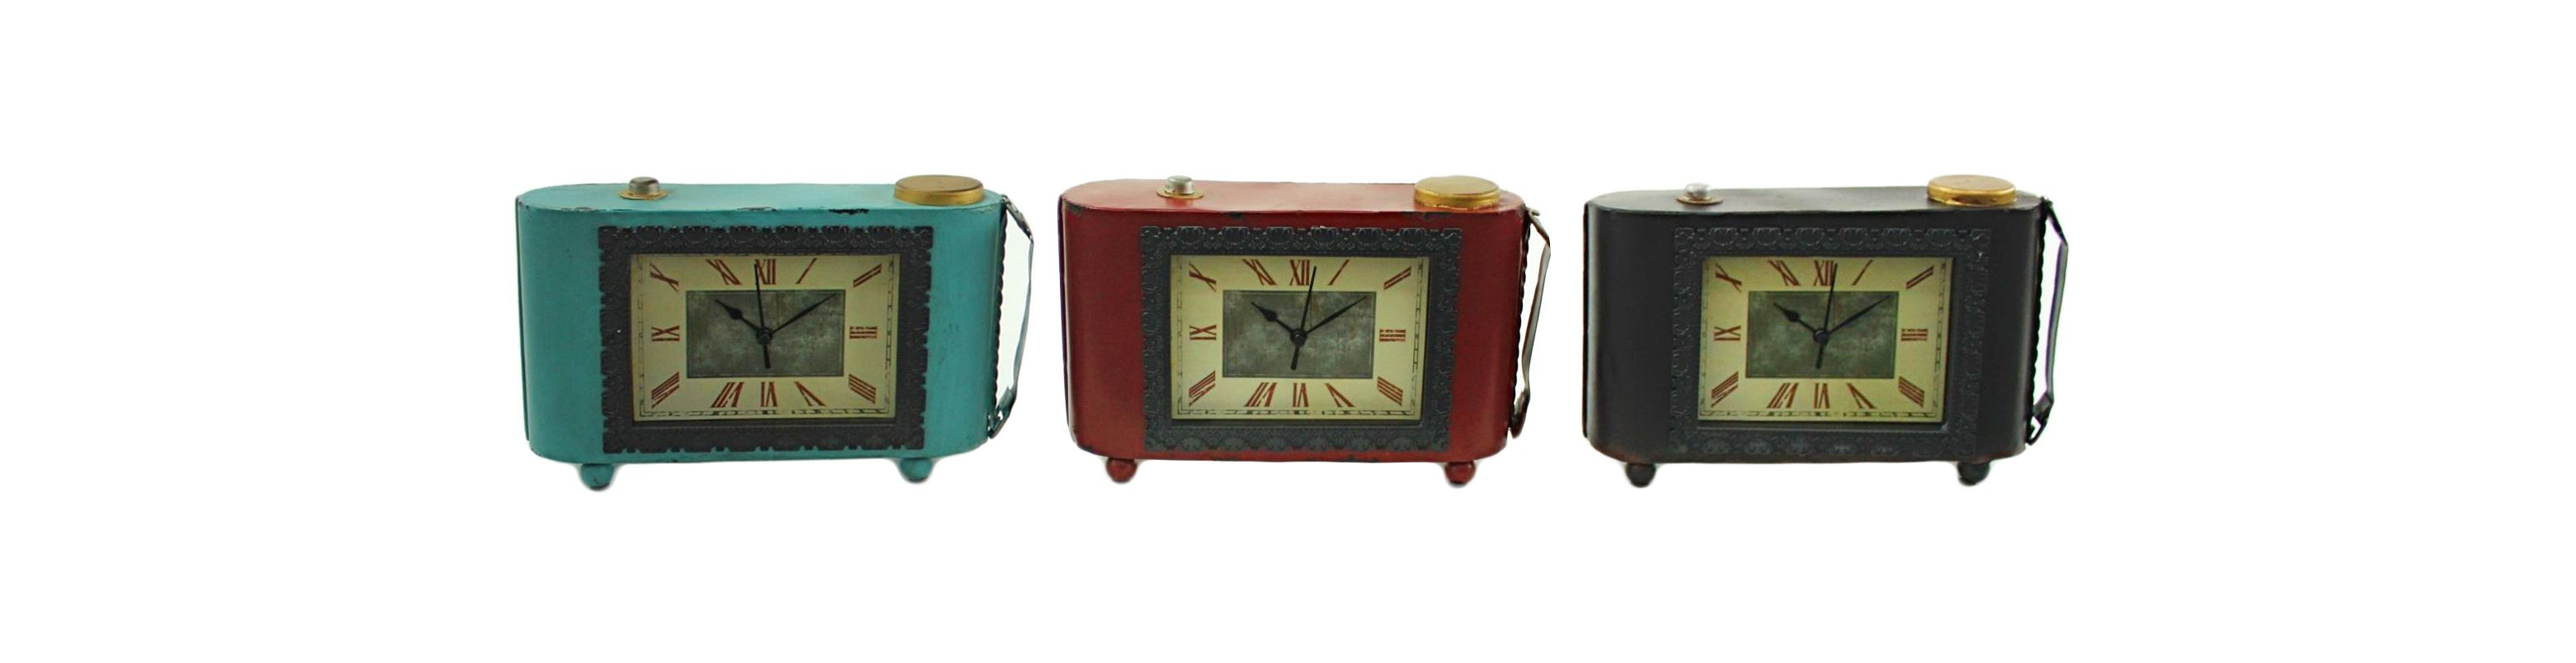 Aspire Home Accents 9182 Helene Table Clocks (Set of 3) Blue / Red /